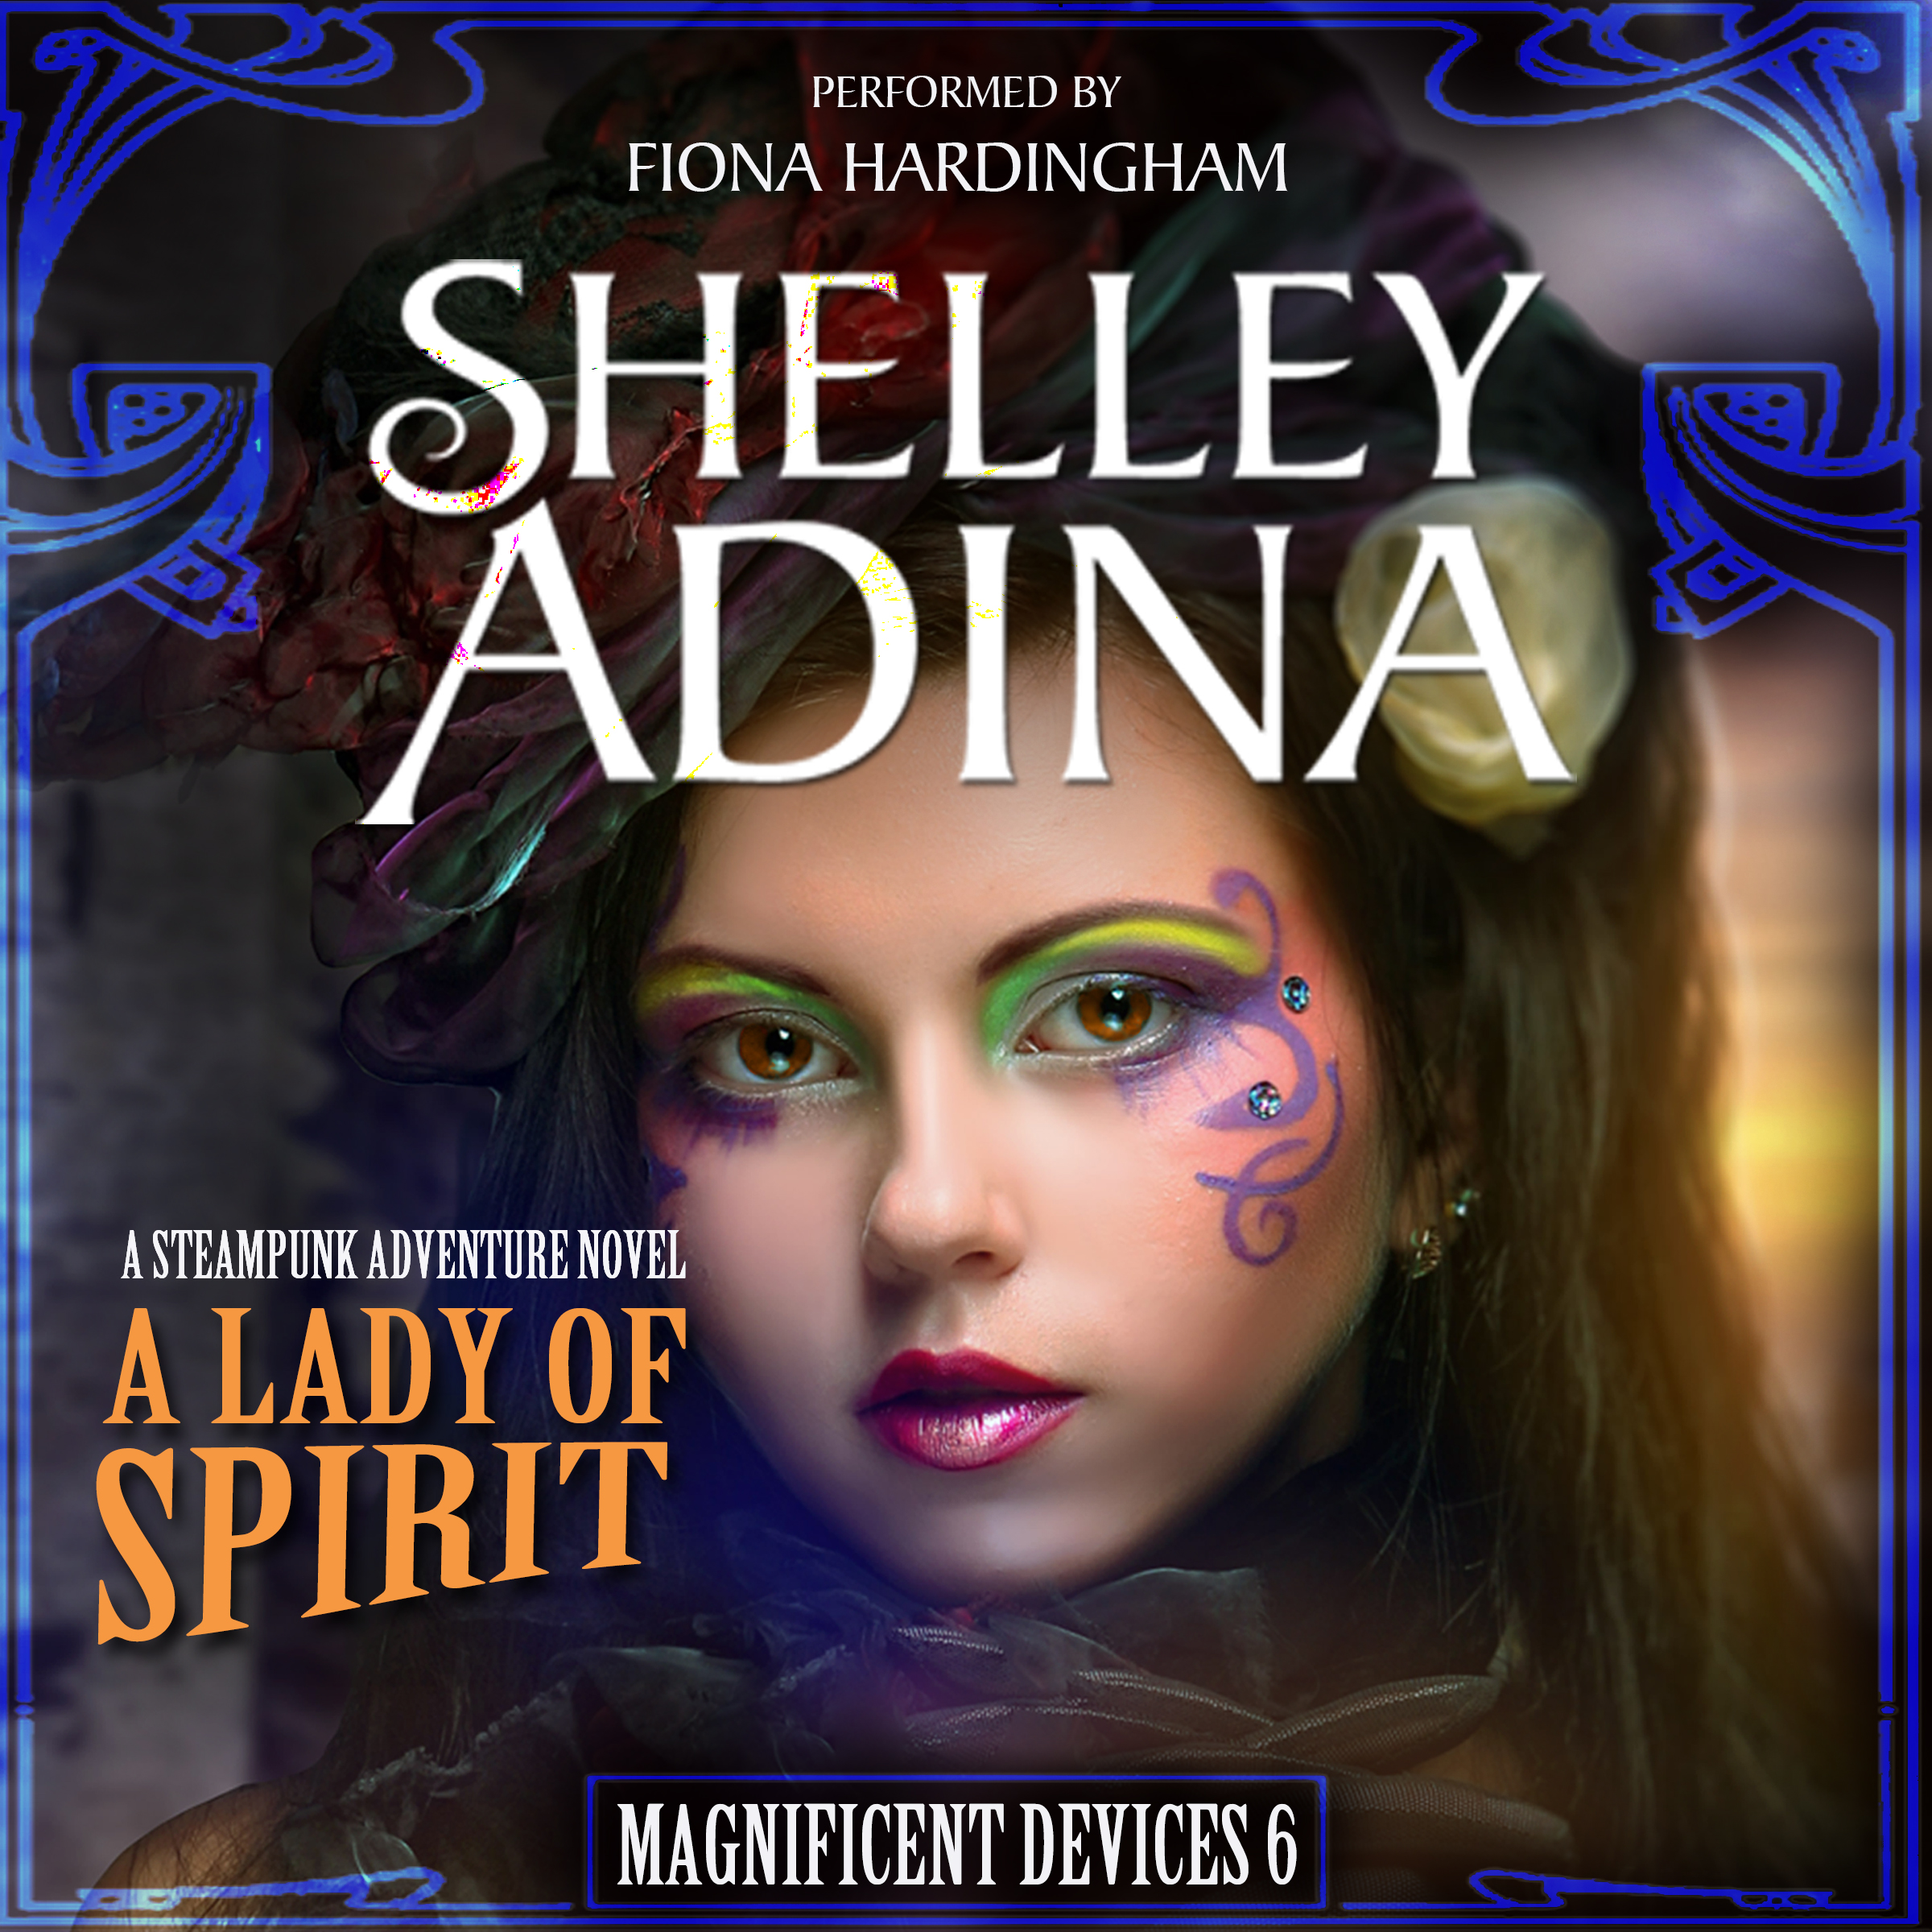 A Lady of Spirit by Shelley Adina, performed by Fiona Hardingham